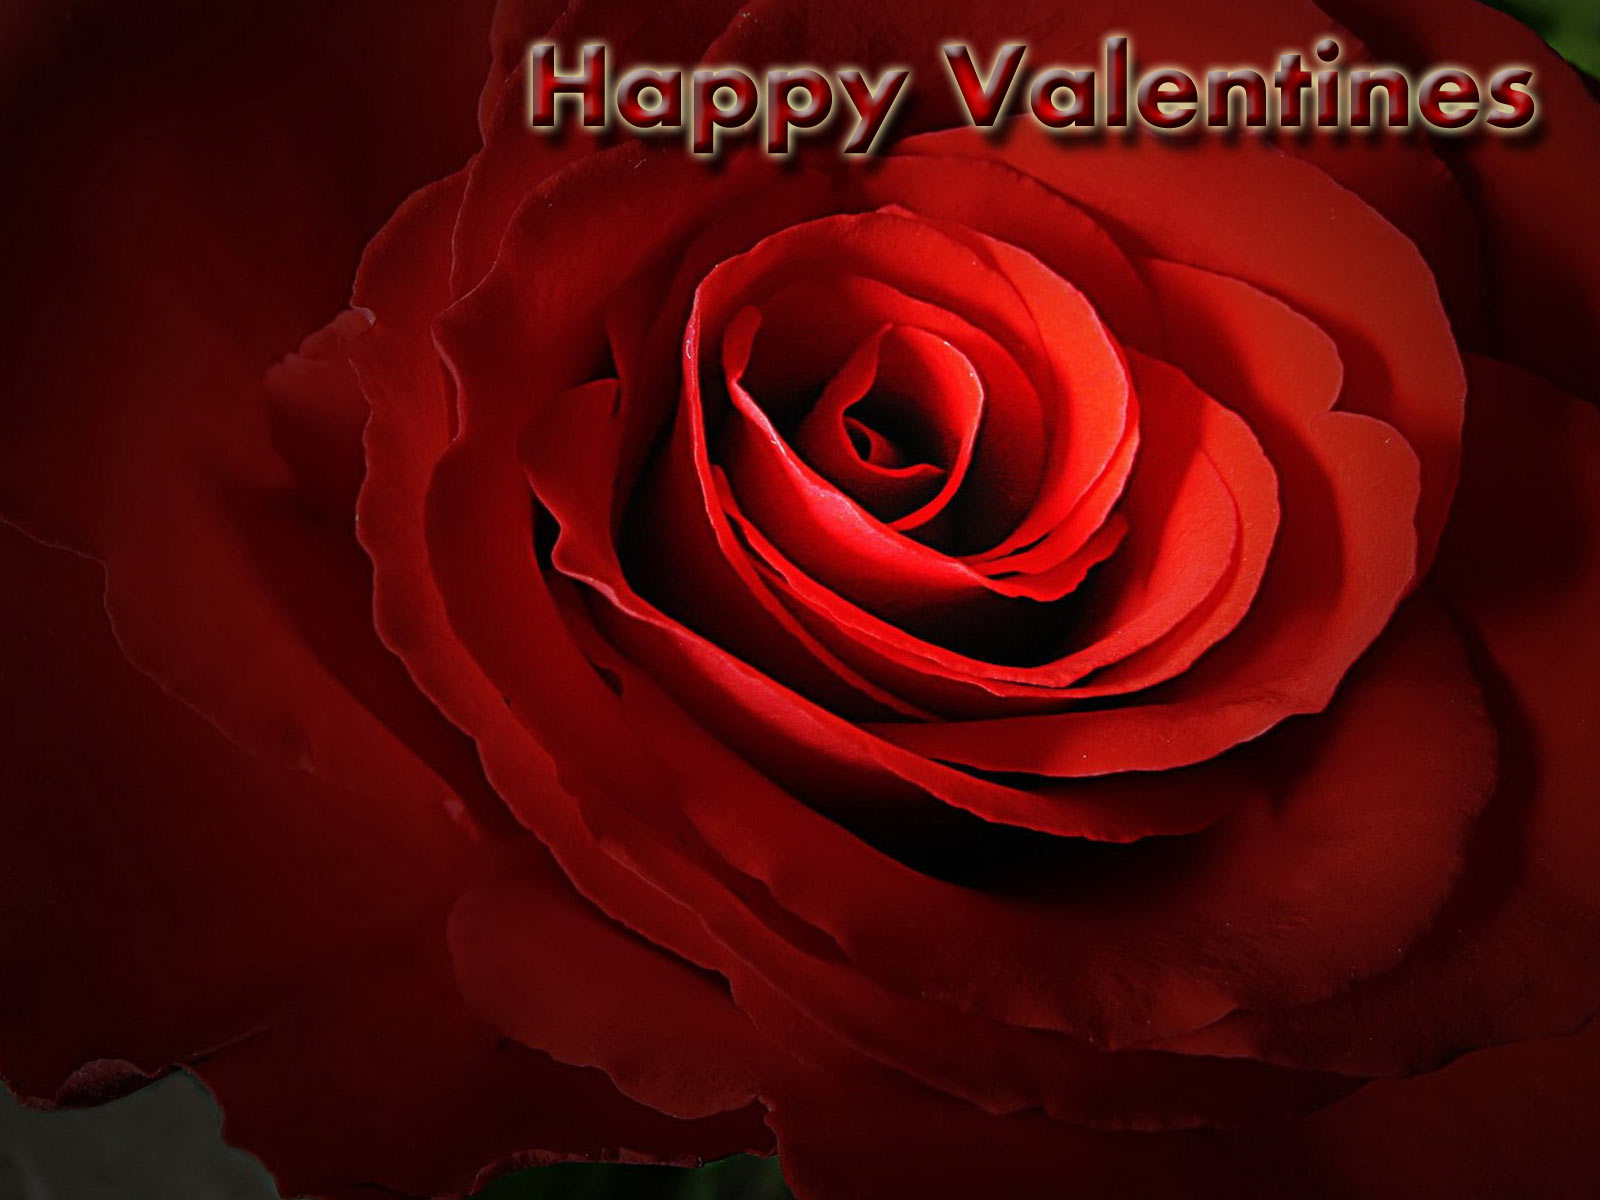 valentine wallpaper desktop valentines wallpaper backgrounds valentine 1600x1200